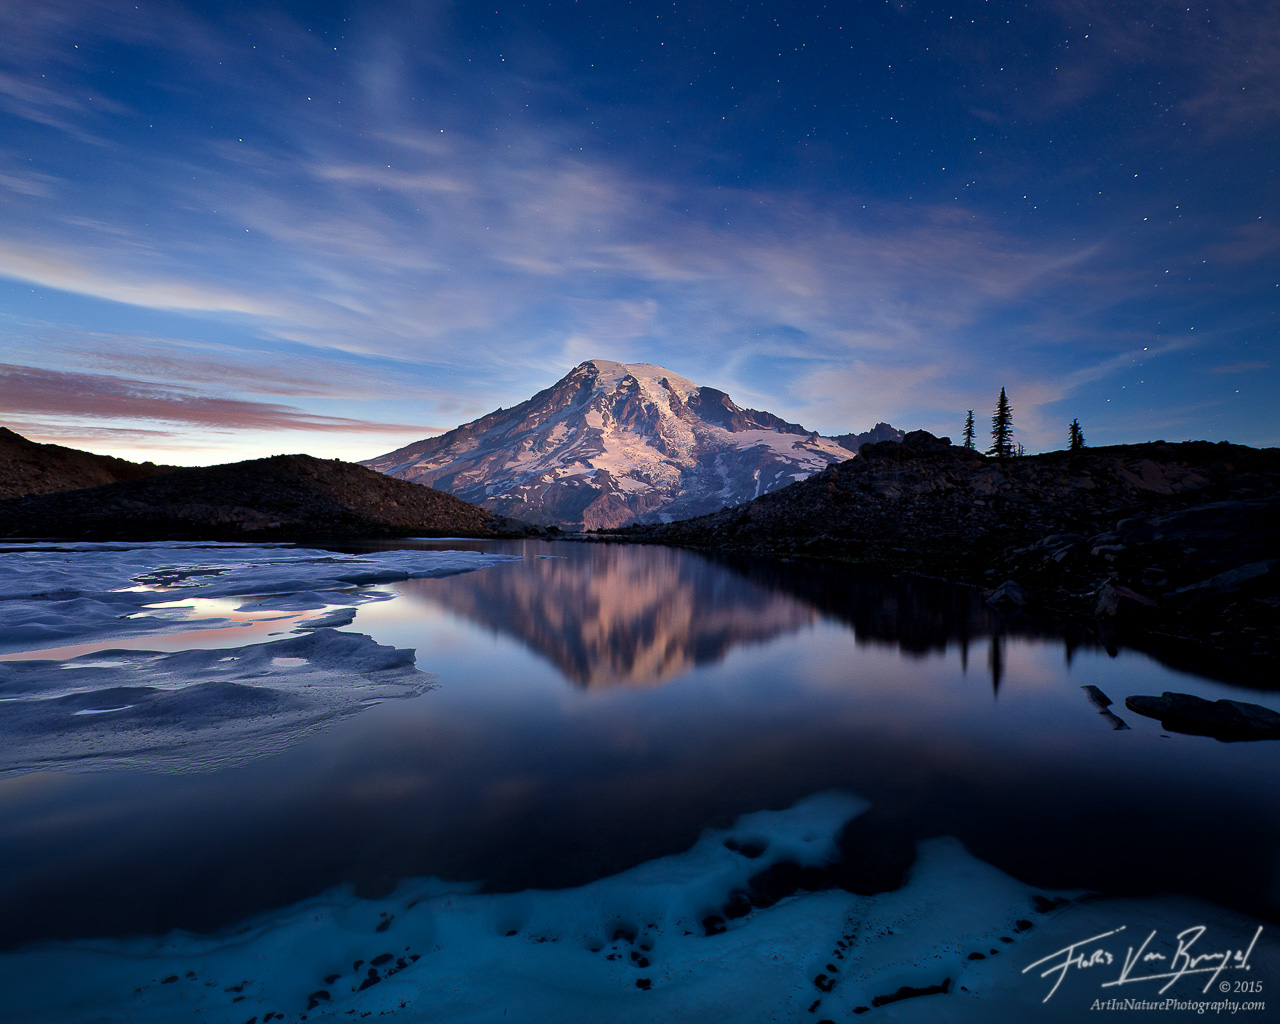 Moonrise on Rainier, Alpen Glow, Climb, photo